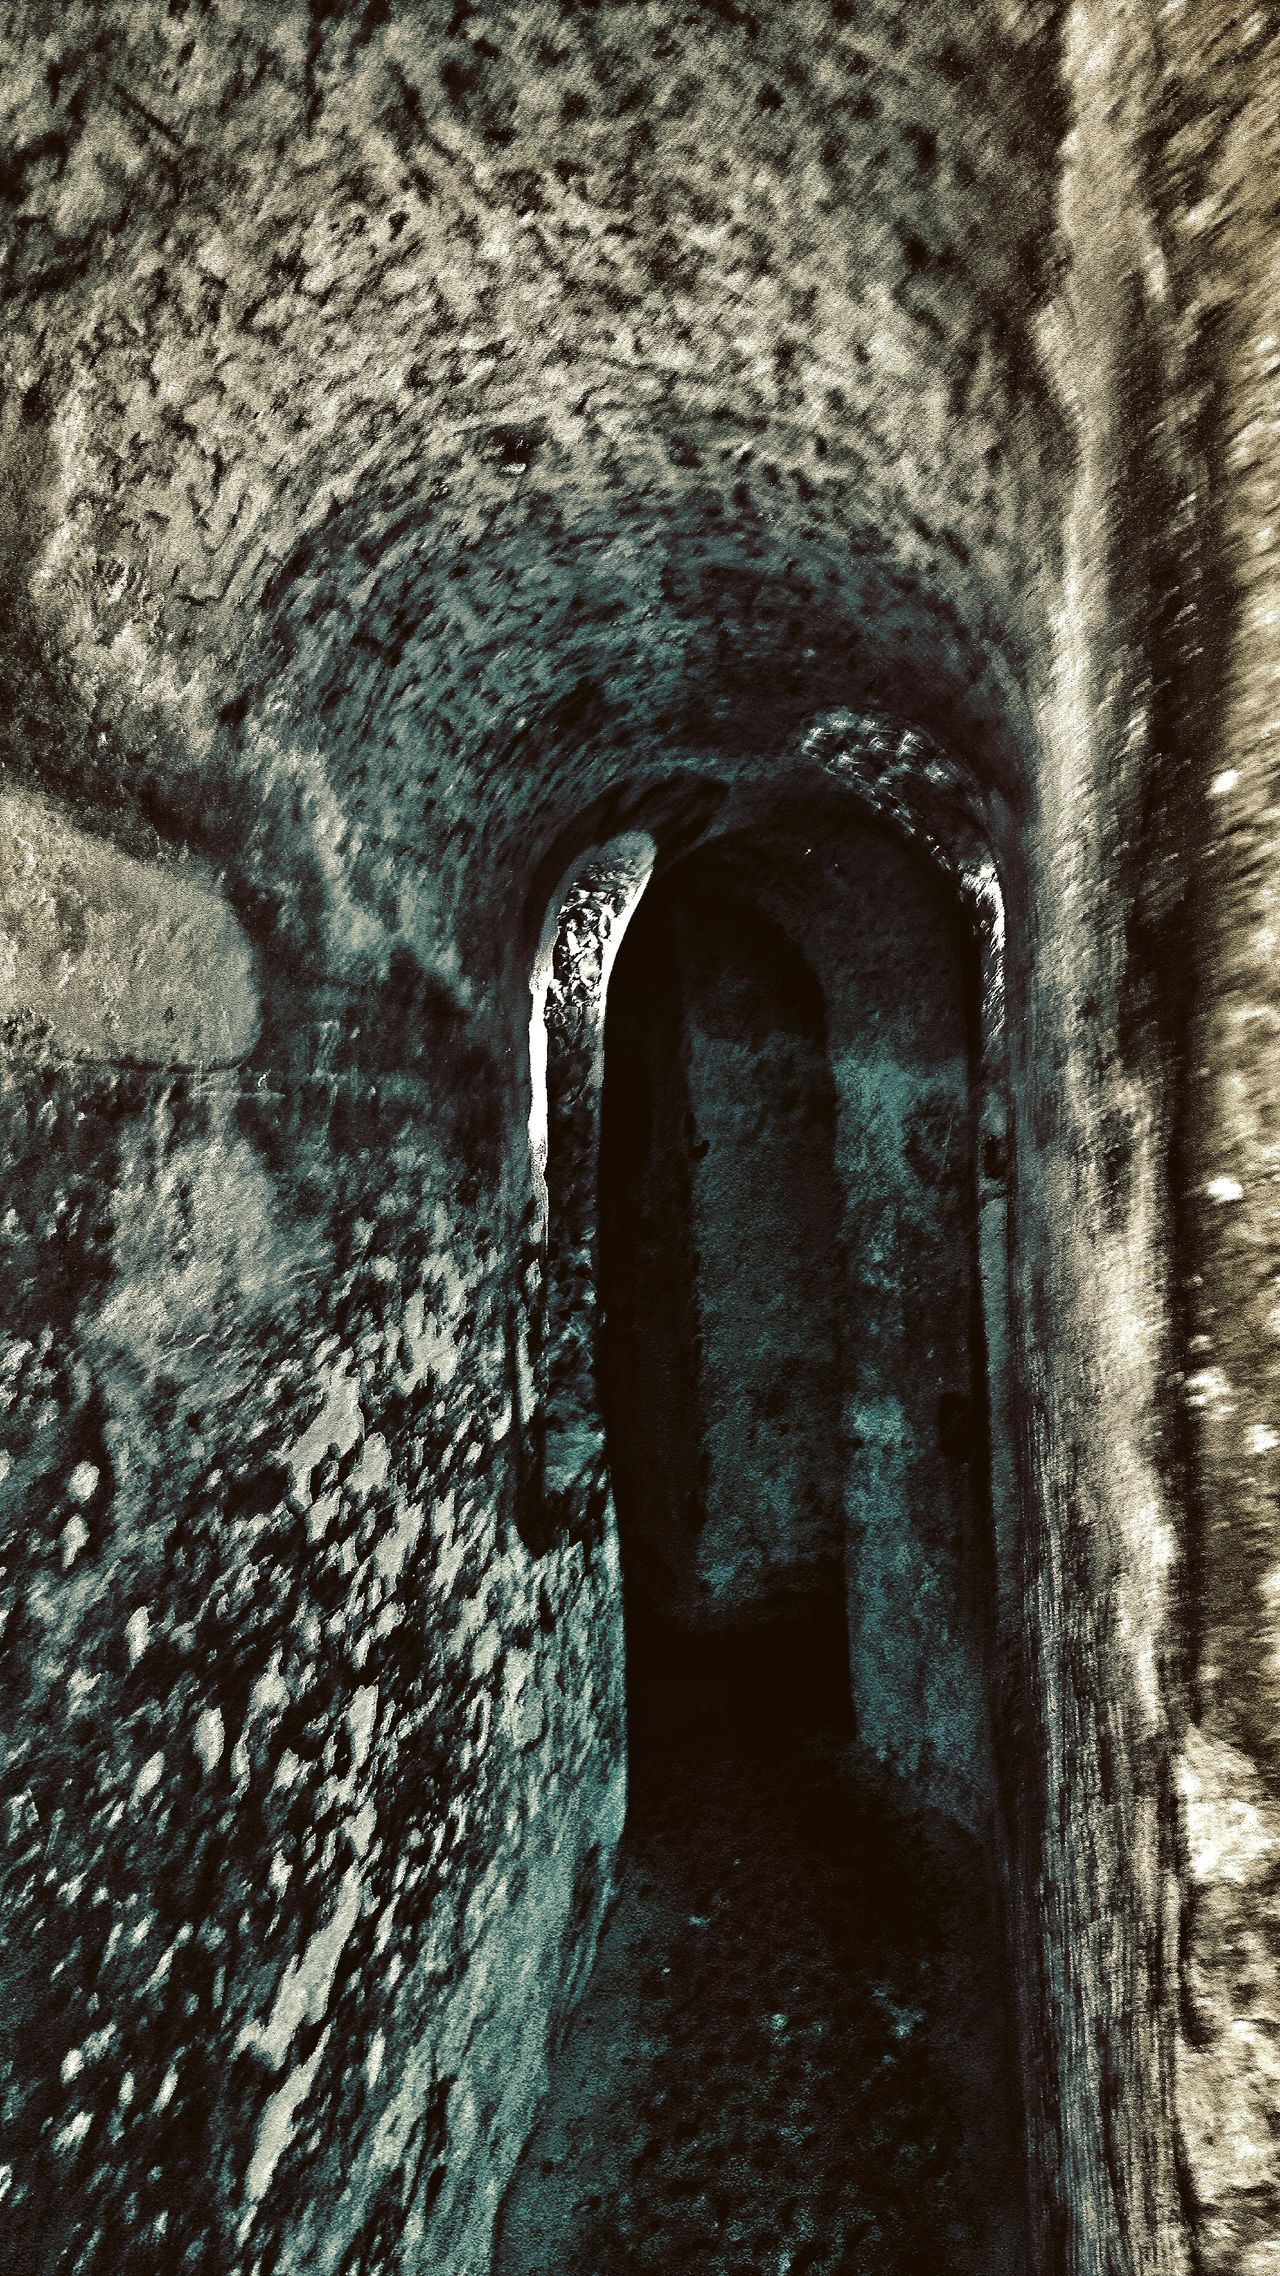 Arch Architecture Tunnel Tunnels Passage Passageway Grotto Underground Undergroundtunnel Undergroundpassage Exploring Shadows Dark Darkness Quiet PhonePhotography Me, My Camera And I Mobilephotography No People Manmade Manmadestructures Old Buildings Architecture_collection Indoors  Monument